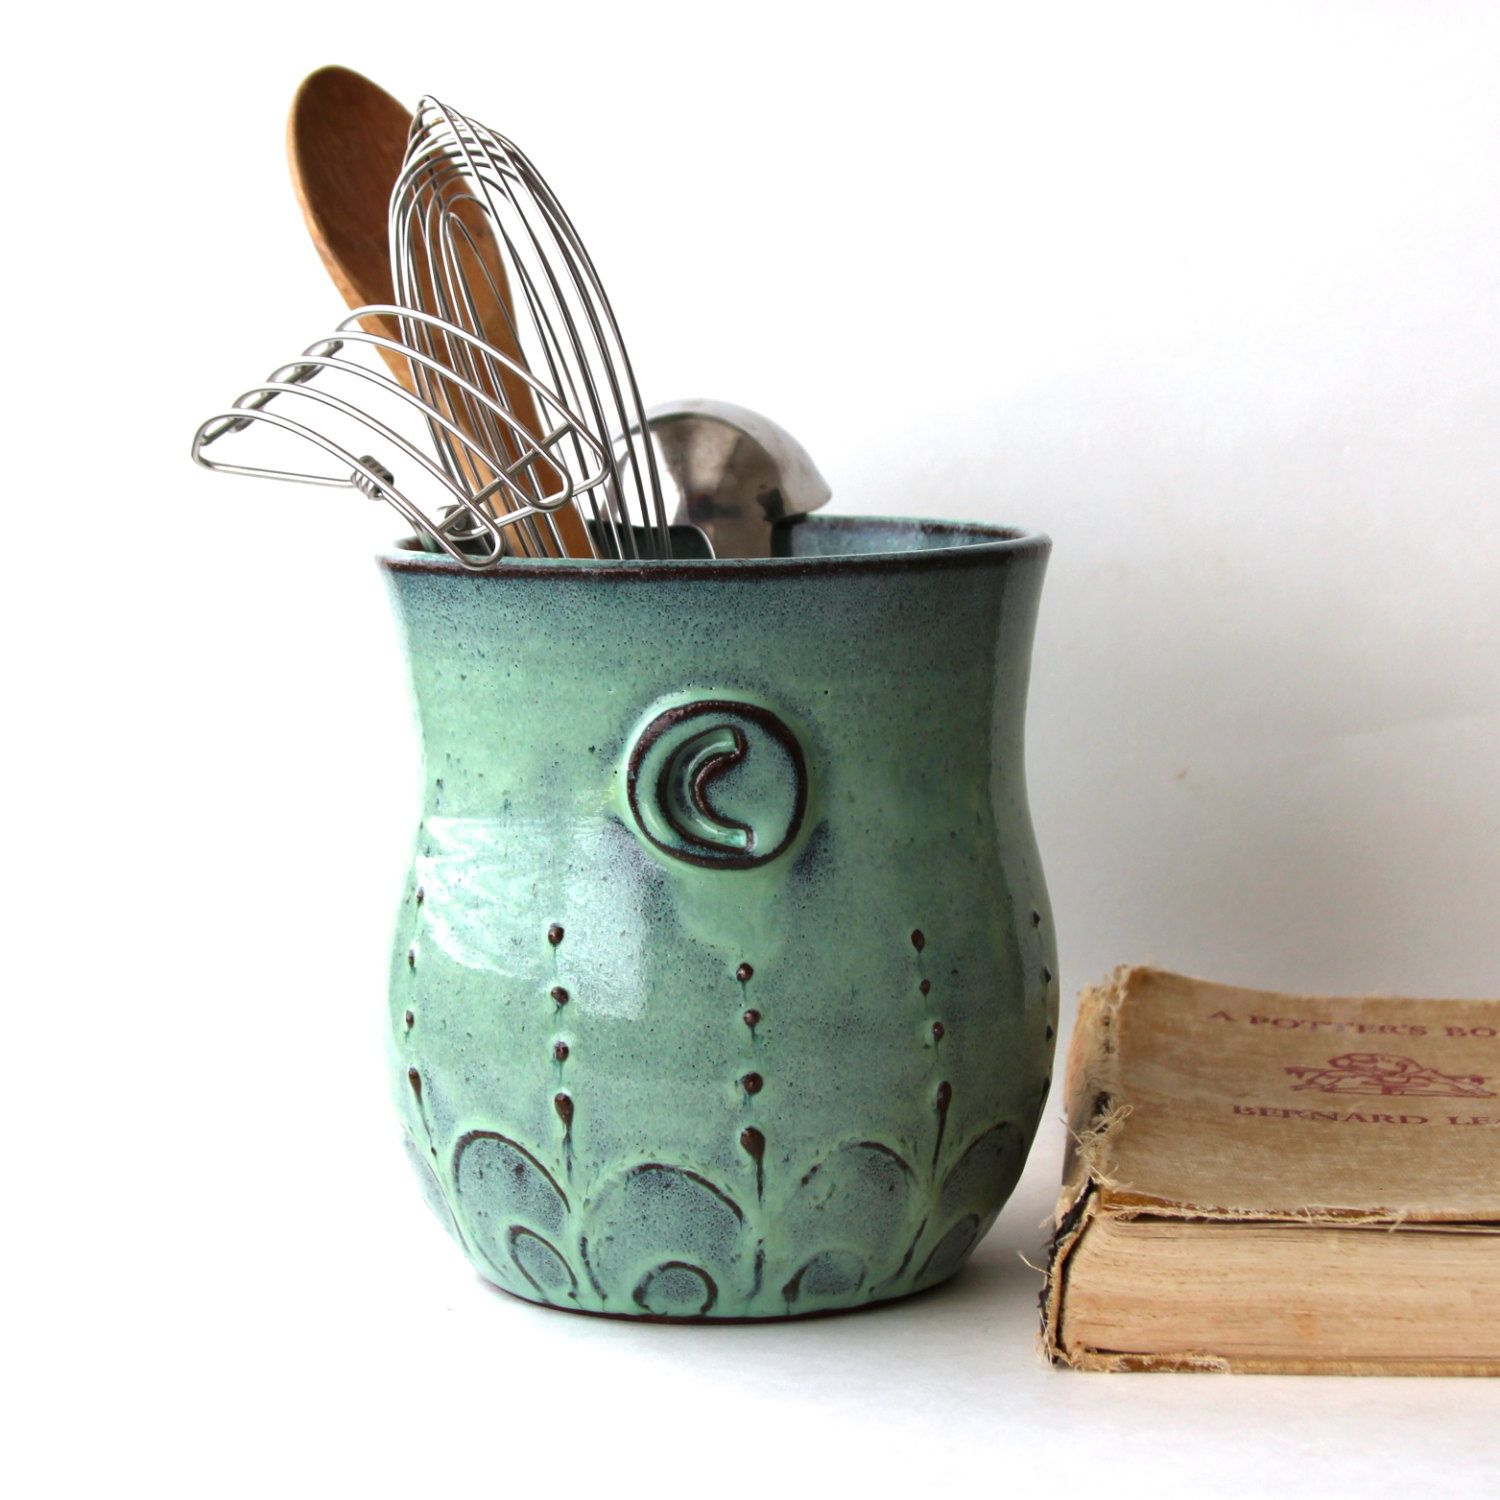 Exceptional Monogram Kitchen Utensil Holder   Aqua Mist   Large Size   French Country  Home Decor